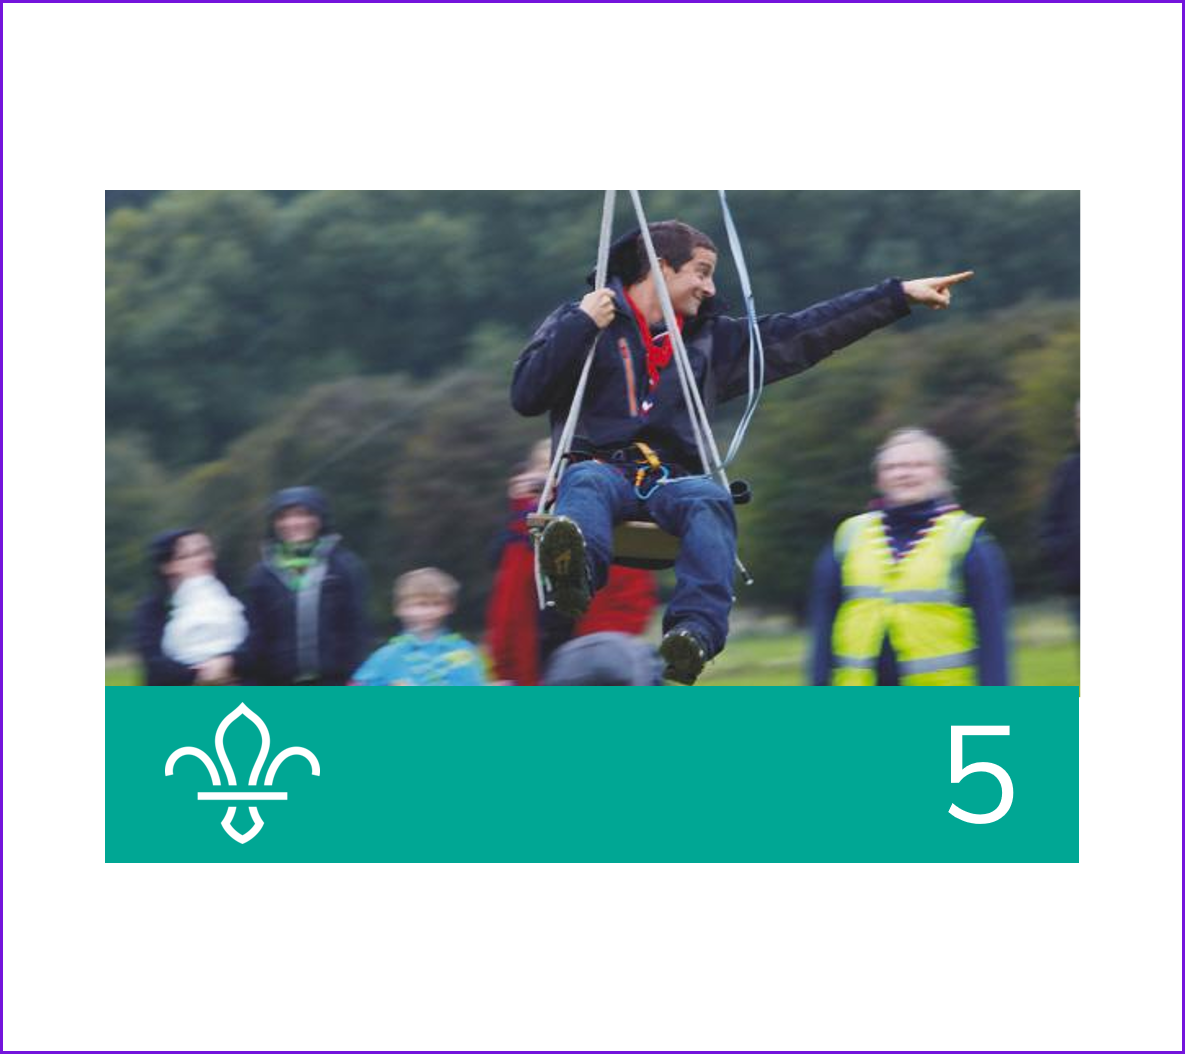 Module 5 - Fundamentals of Scouting